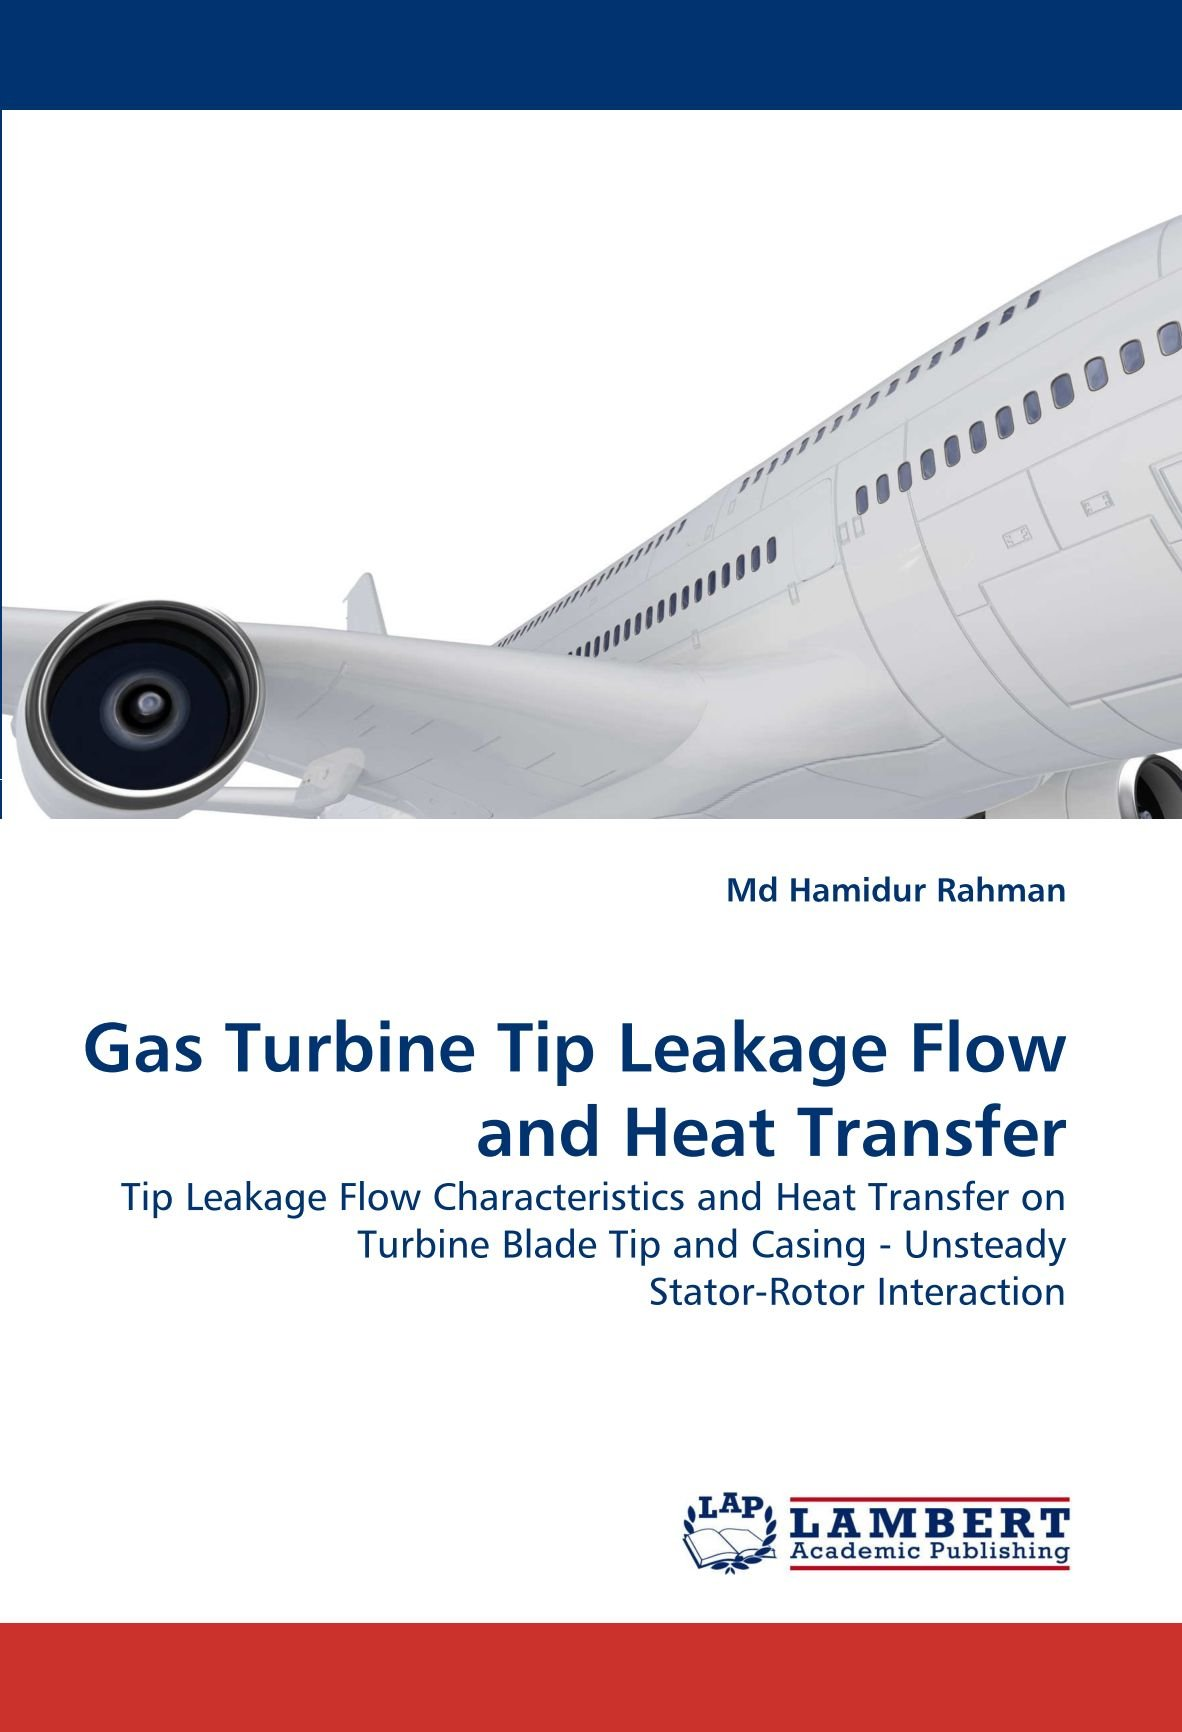 Gas Turbine Tip Leakage Flow and Heat Transfer: Tip Leakage Flow Characteristics and Heat Transfer on Turbine Blade Tip and Casing - Unsteady Stator-Rotor Interaction ebook